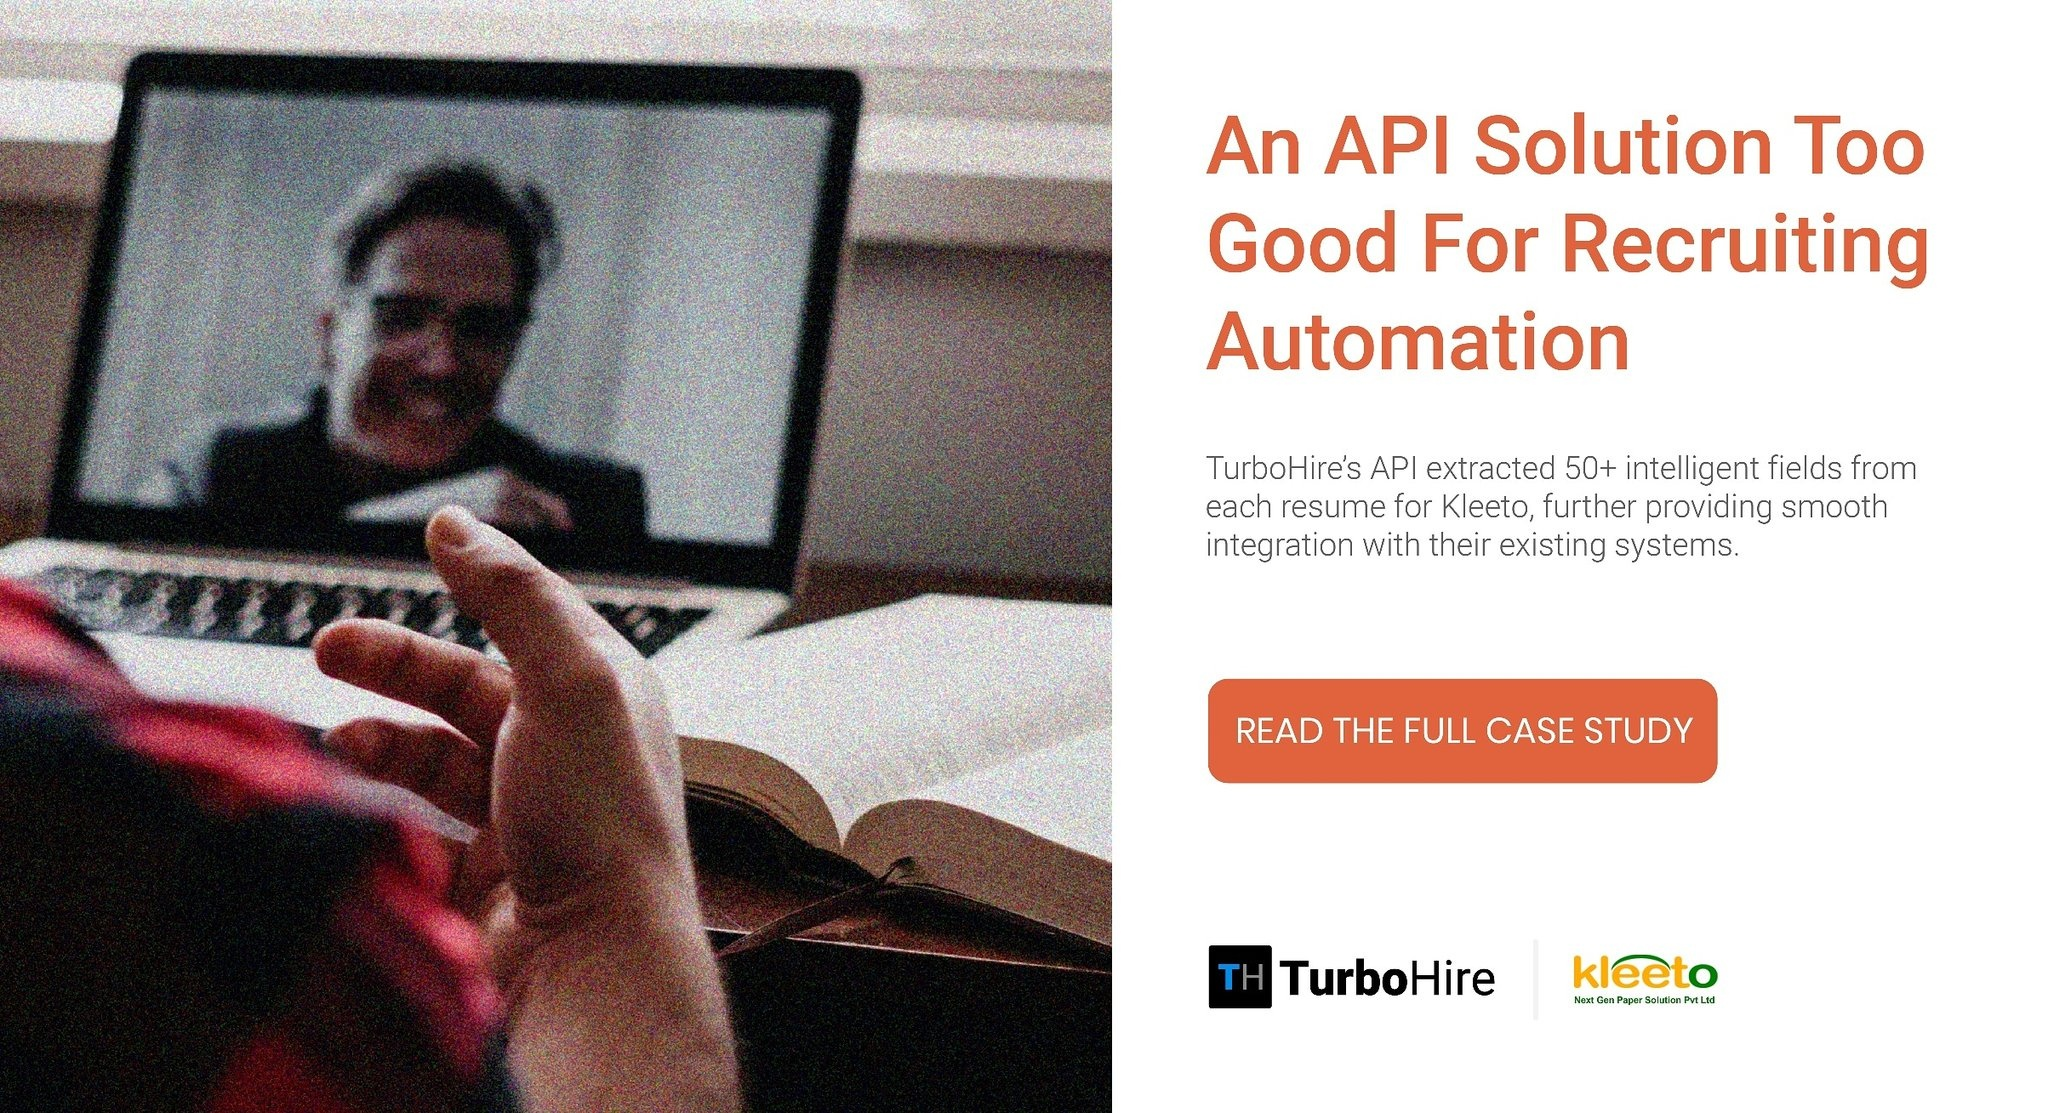 An API Solution Too Good For Recruiting Automation